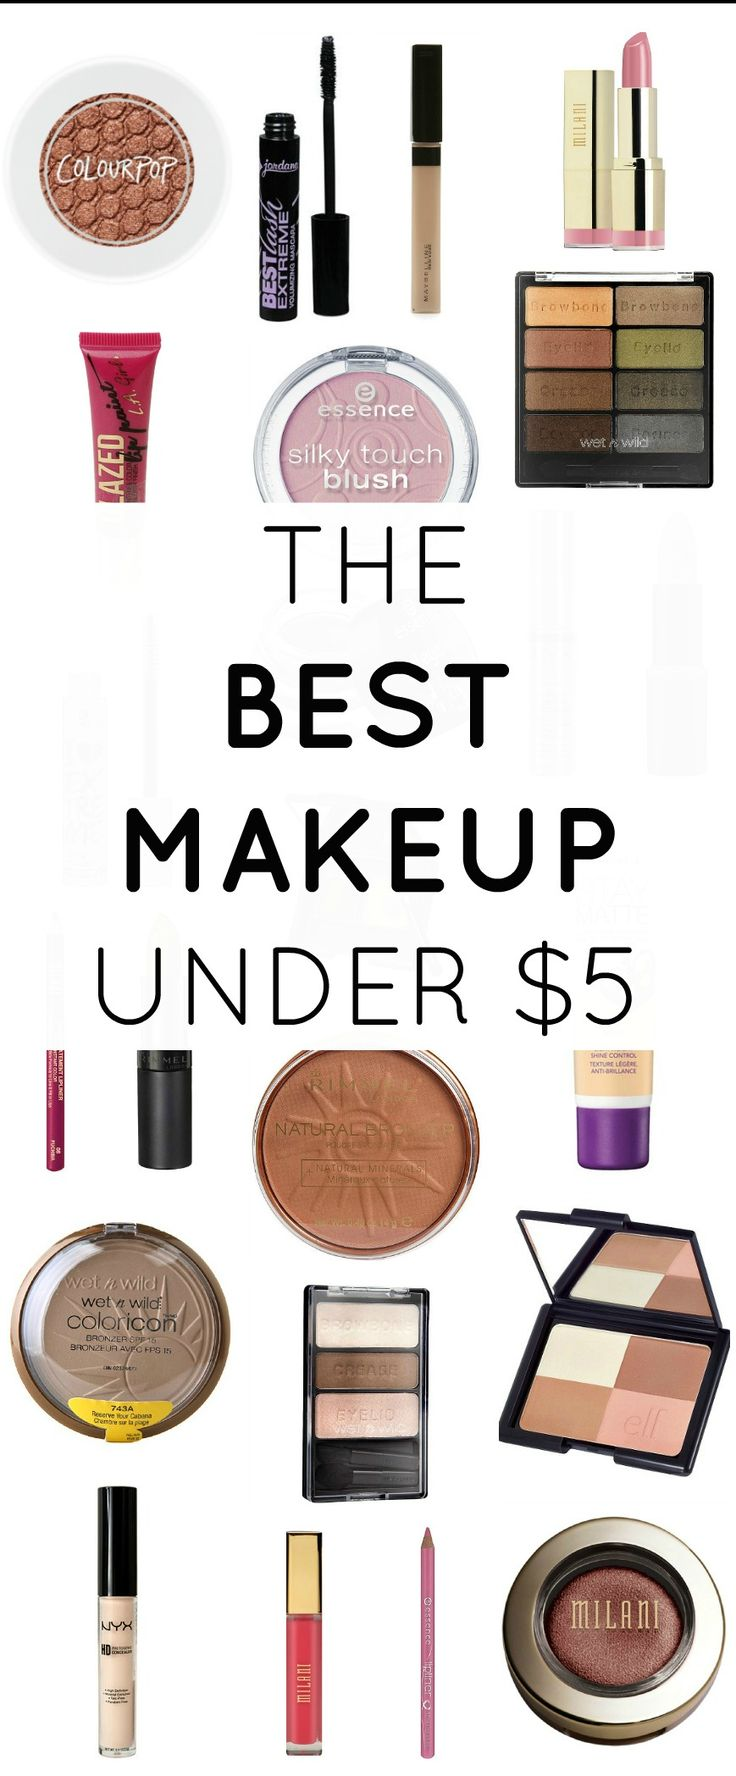 Great makeup doesn't have to cost a fortune. This post shares the BEST drugstore makeup products, and they're all under $5! | by @ashleynicholas at ashleybrookenicholas.com